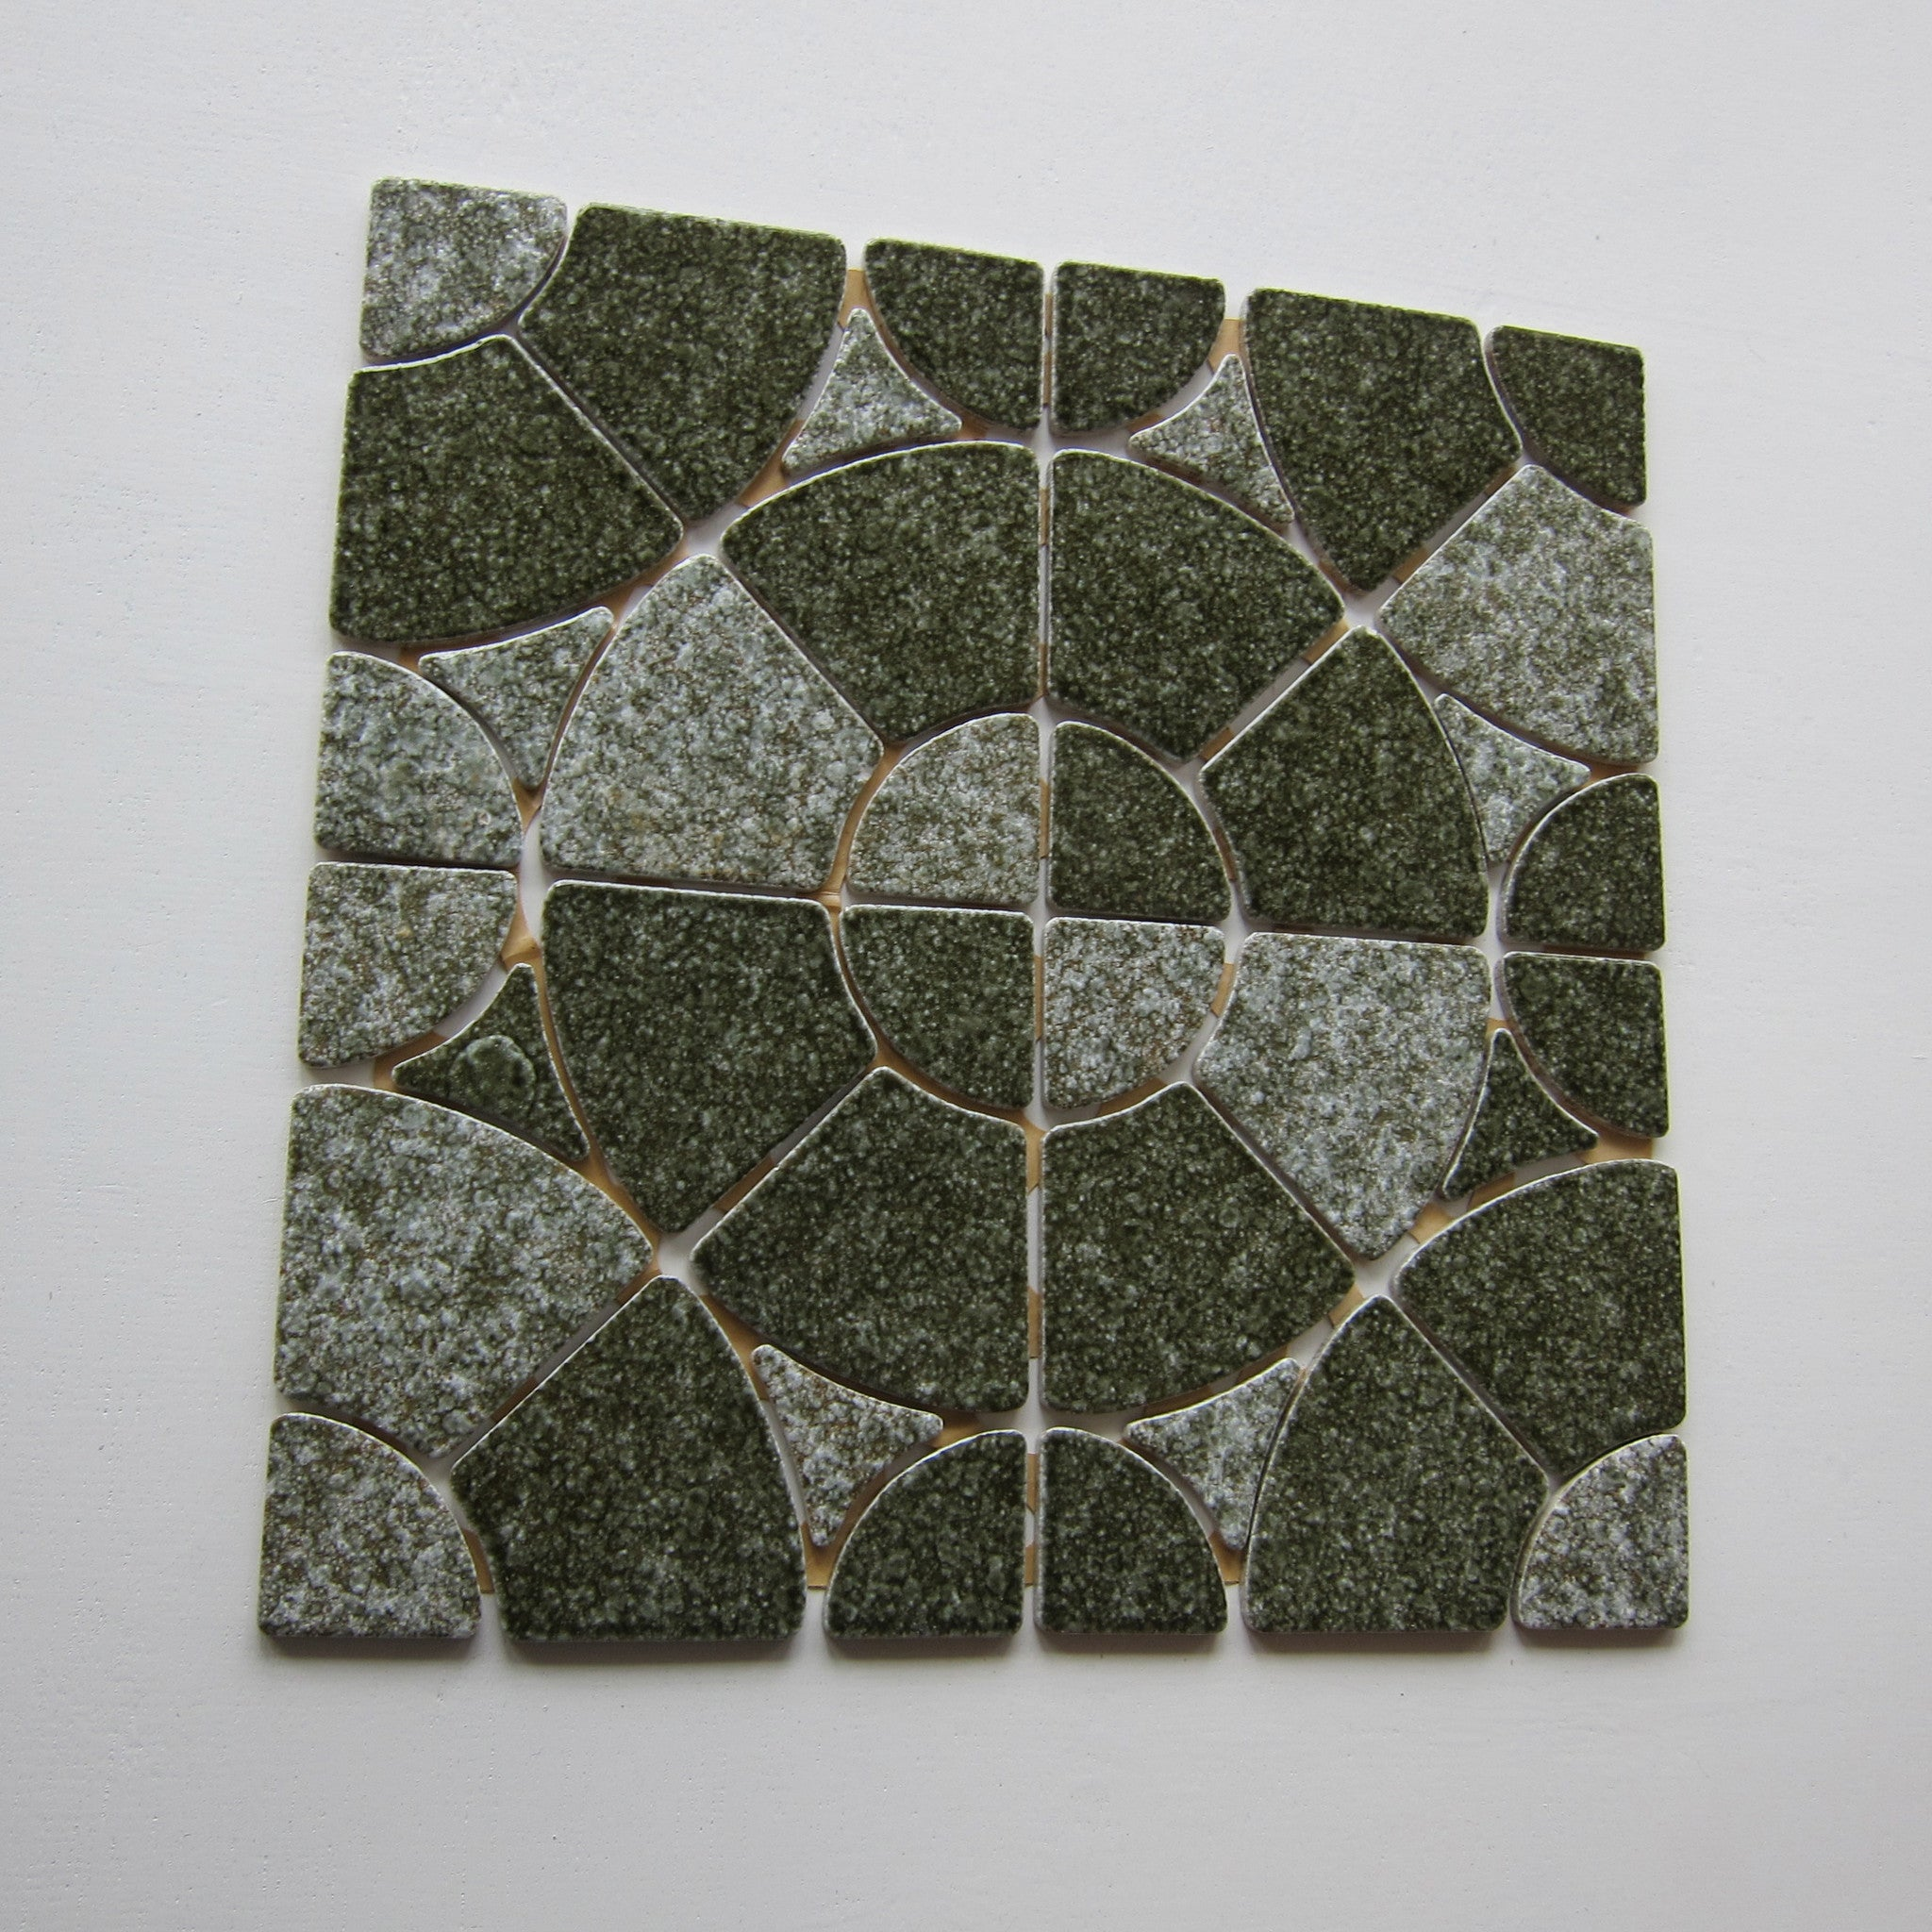 Vintage 1970s Floor Tile 57 Sq Ft Available Made in Japan